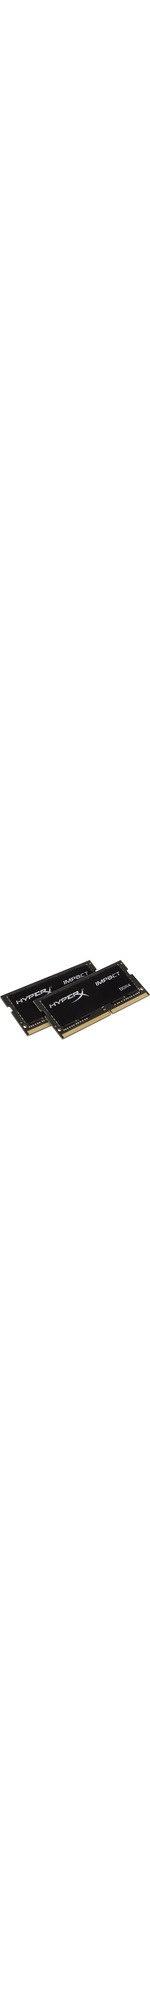 Kingston HyperX Impact RAM Module - 32 GB 2 x 16 GB - DDR4 SDRAM - 2400 MHz DDR4-2400/PC4-19200 - 1.20 V - Non-ECC - Unbuffered - CL14 - 260-pin - SoDIMM